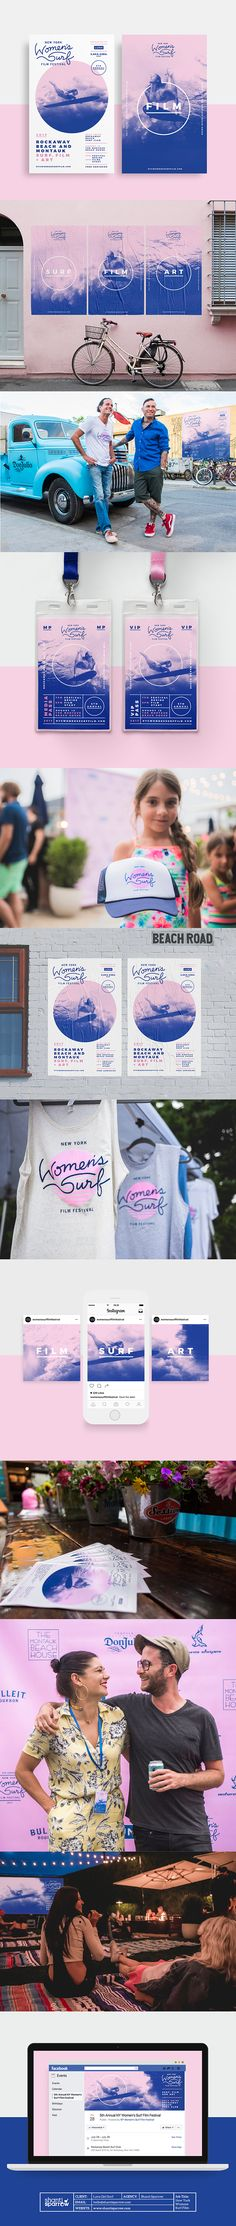 Design by Shanti Sparrow www.shantisparrow.com Event Branding Design: The New York Women's Surf Film Festival #branding #event #eventbranding #rollout #filmfestival #poster #design #graphicdesign